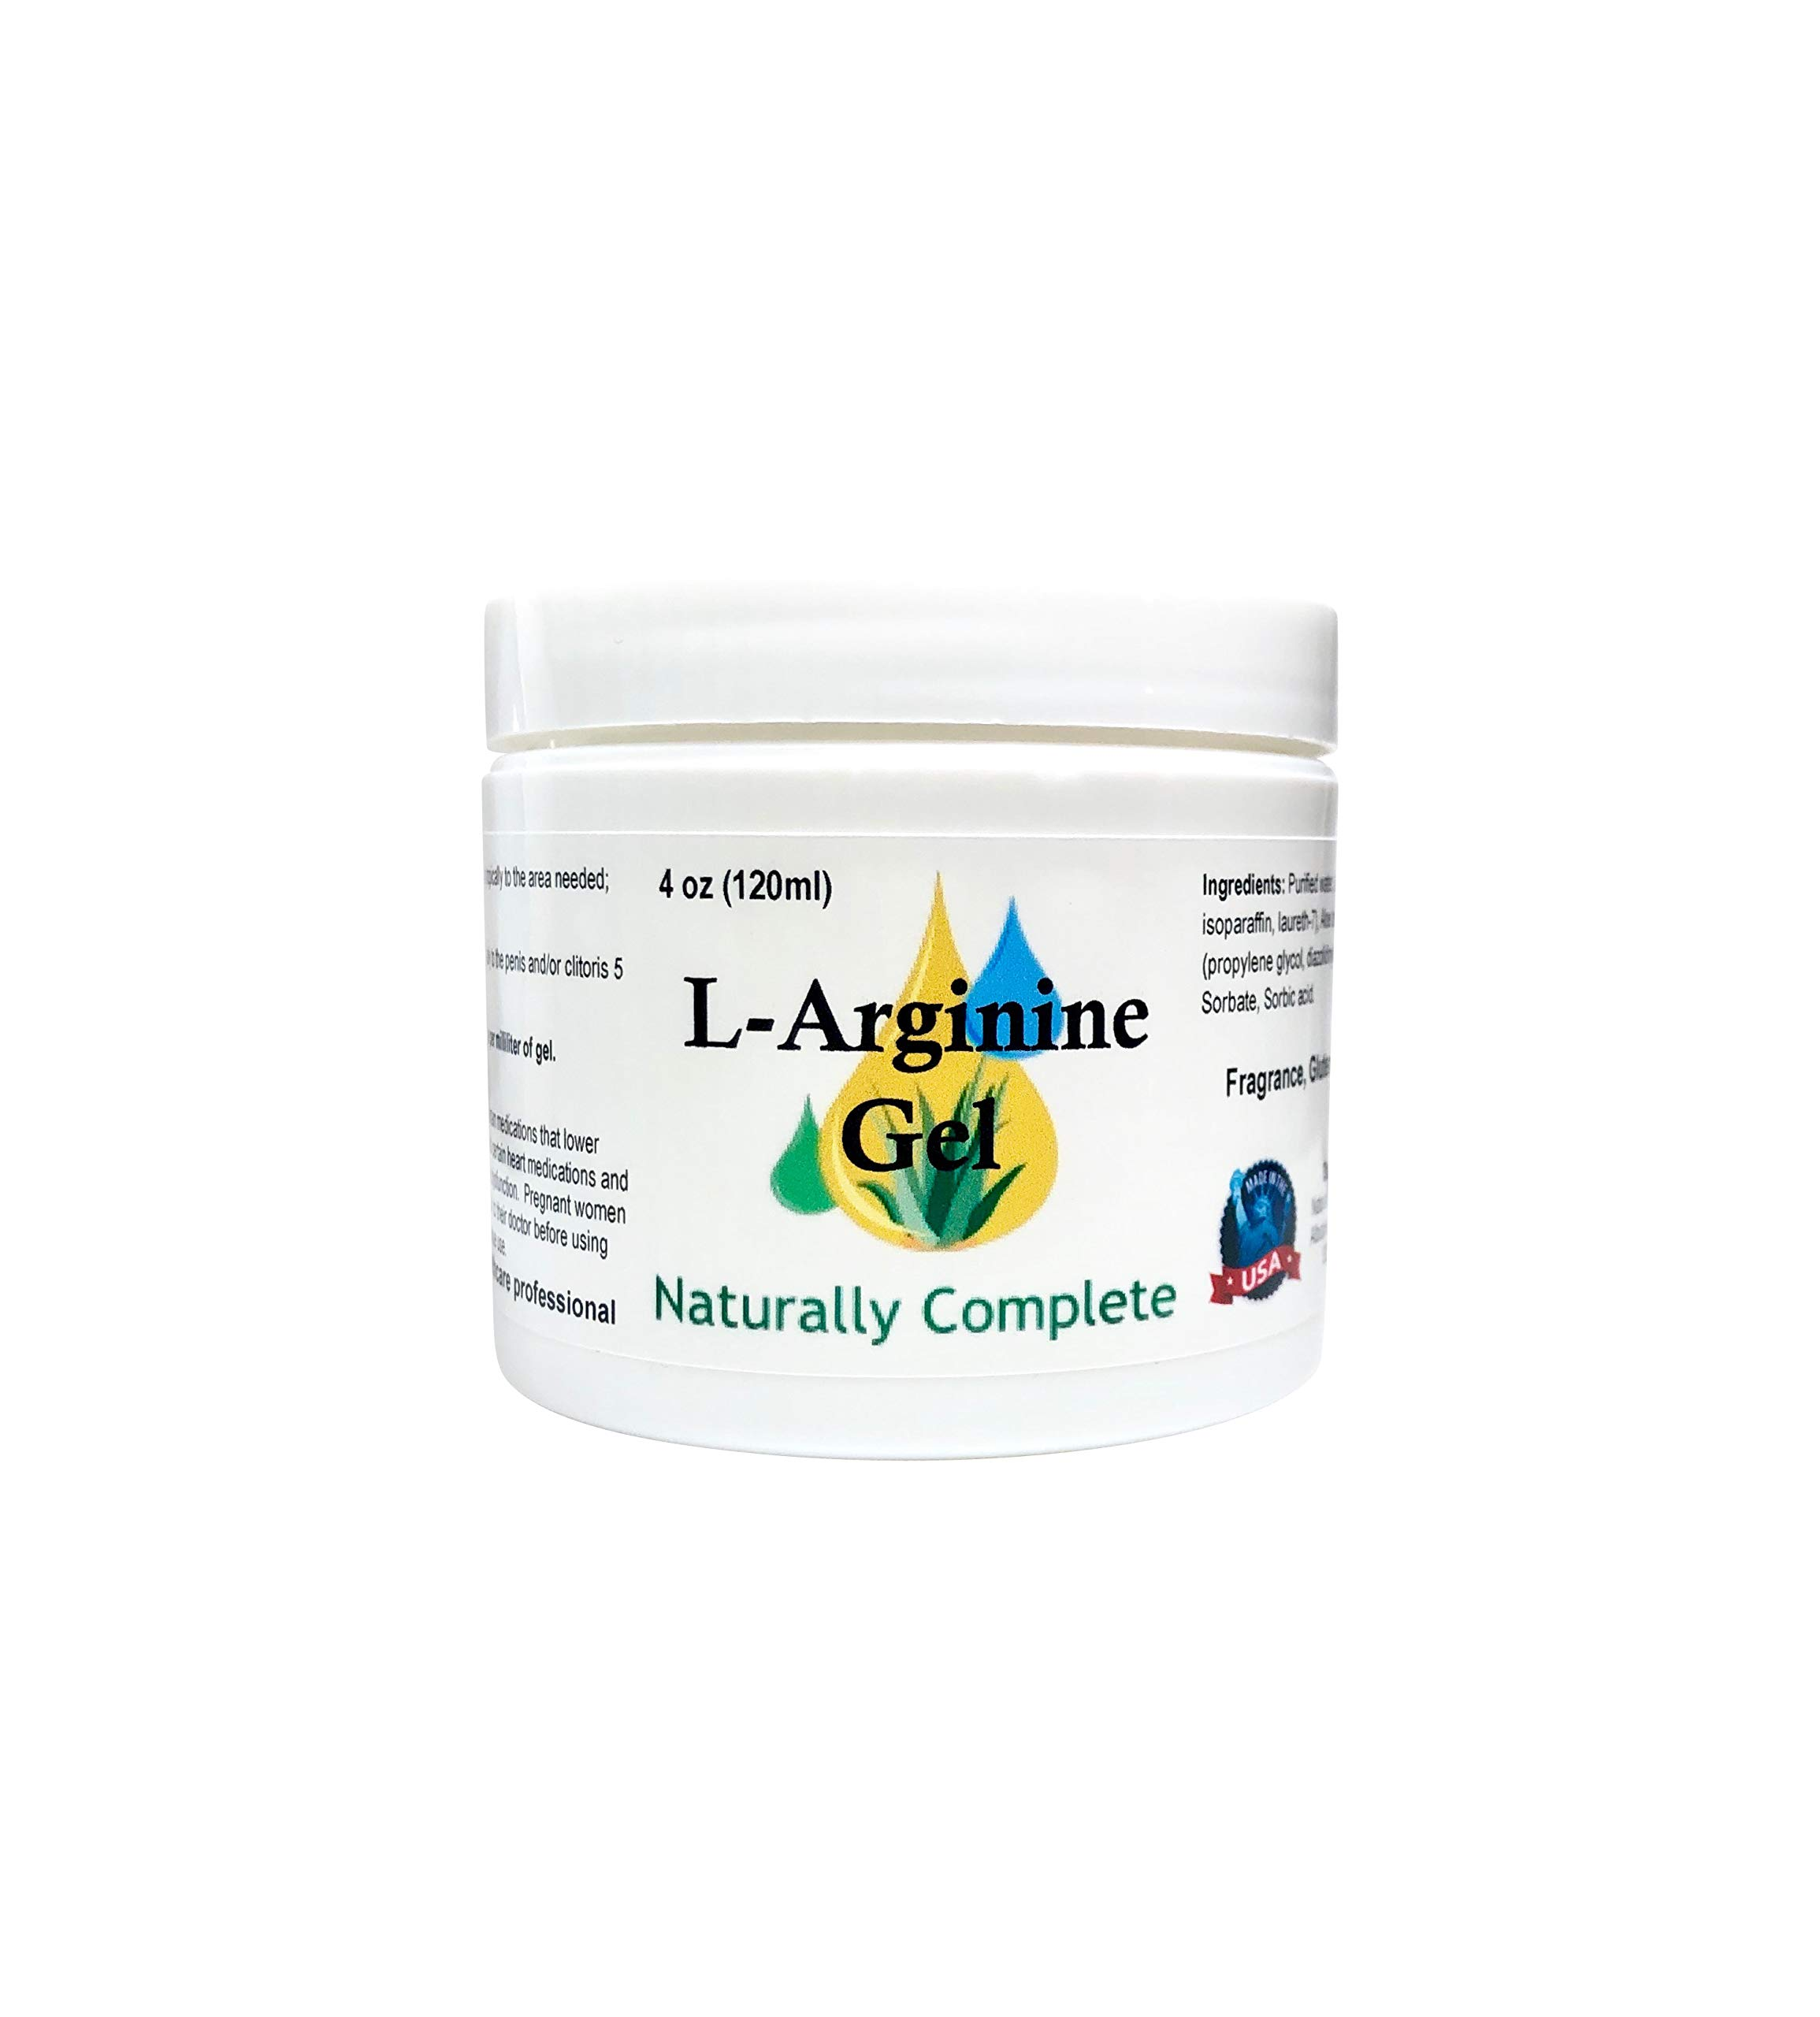 Naturally Complete L-Arginine 4 oz Jar | Also in 2 oz Jar | Non-GMO | Unscented | for Men and Women | Made in USA